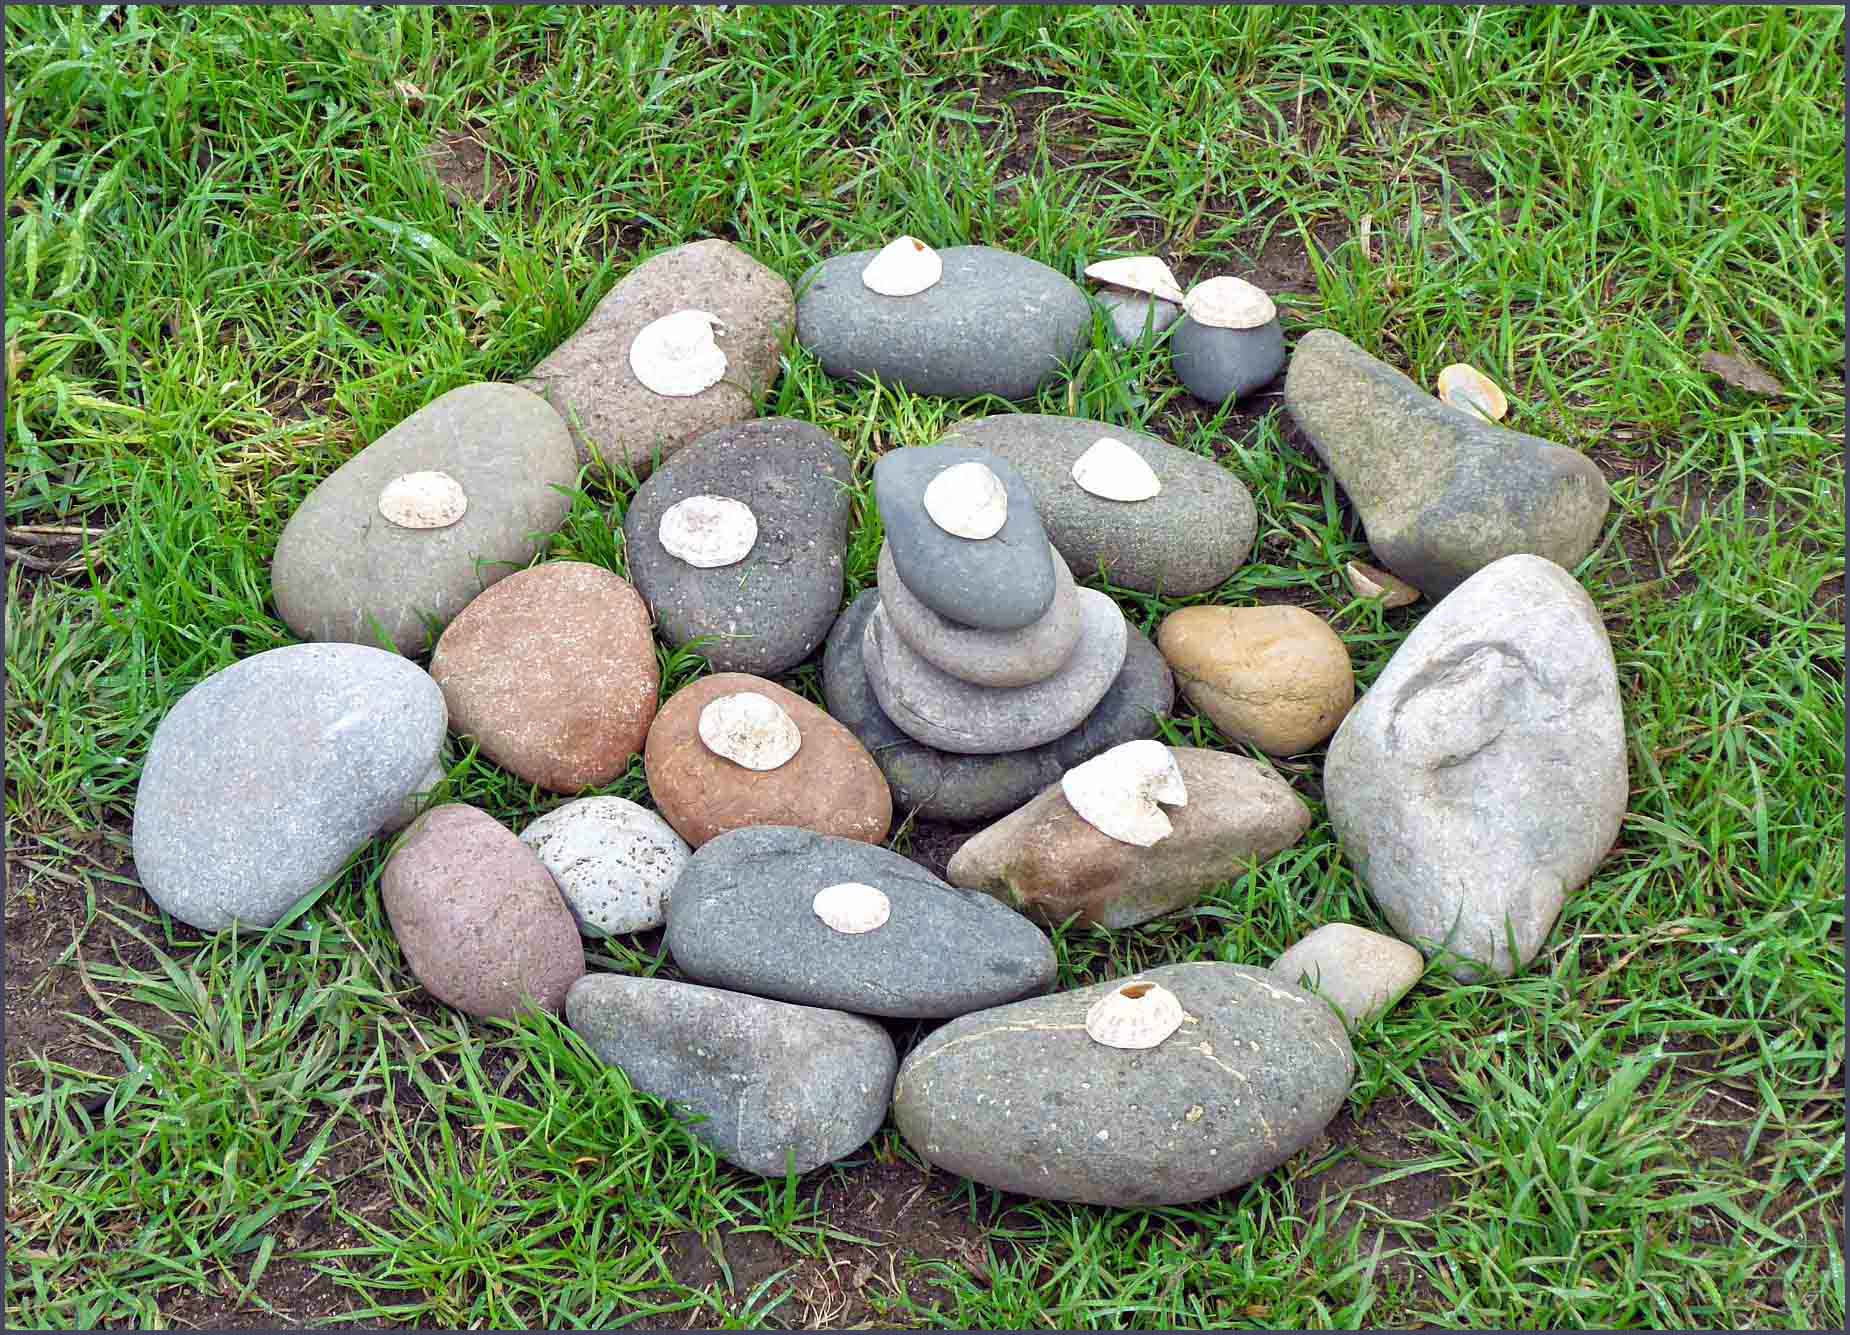 Stones arranged in a circle on grass